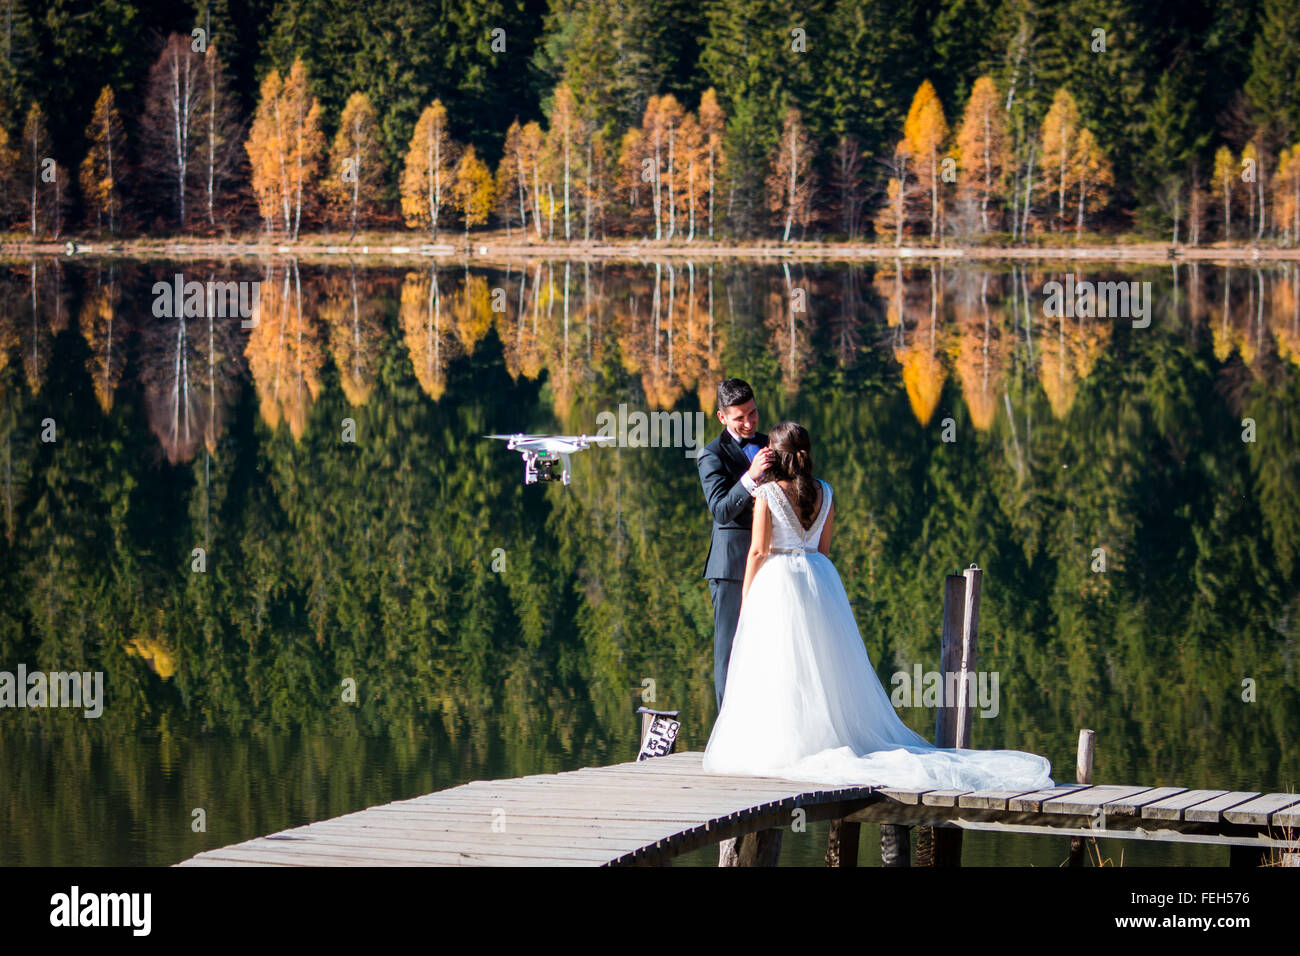 Groom and bride being filmed by a drone on the shore of a lake in an autumn setting - Stock Image